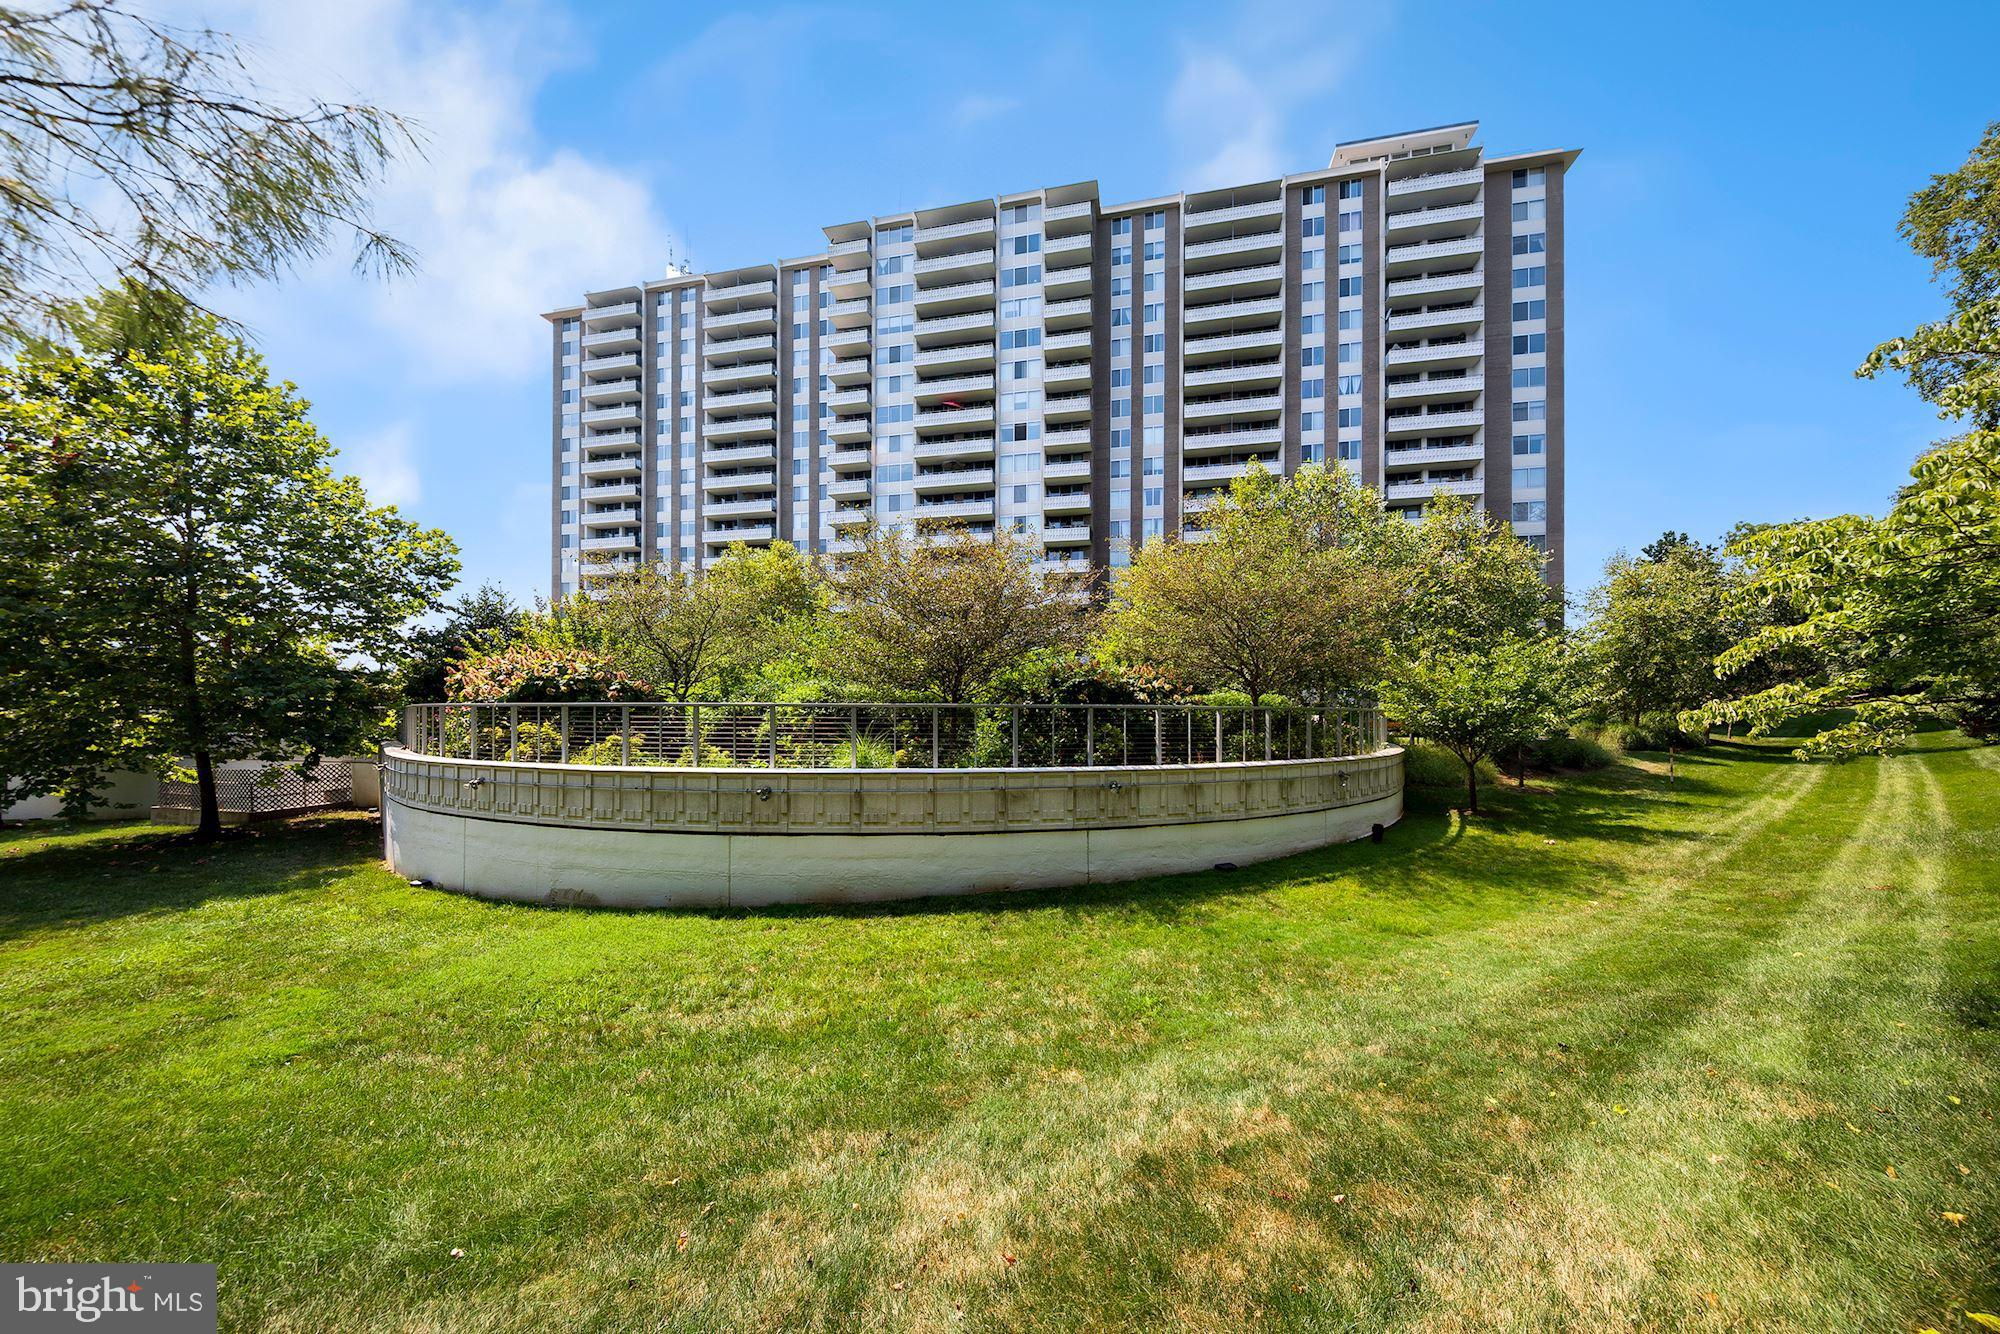 Bright and Beautiful 2-bedroom, 2 full bath corner unit with over 1,450 square feet of living space